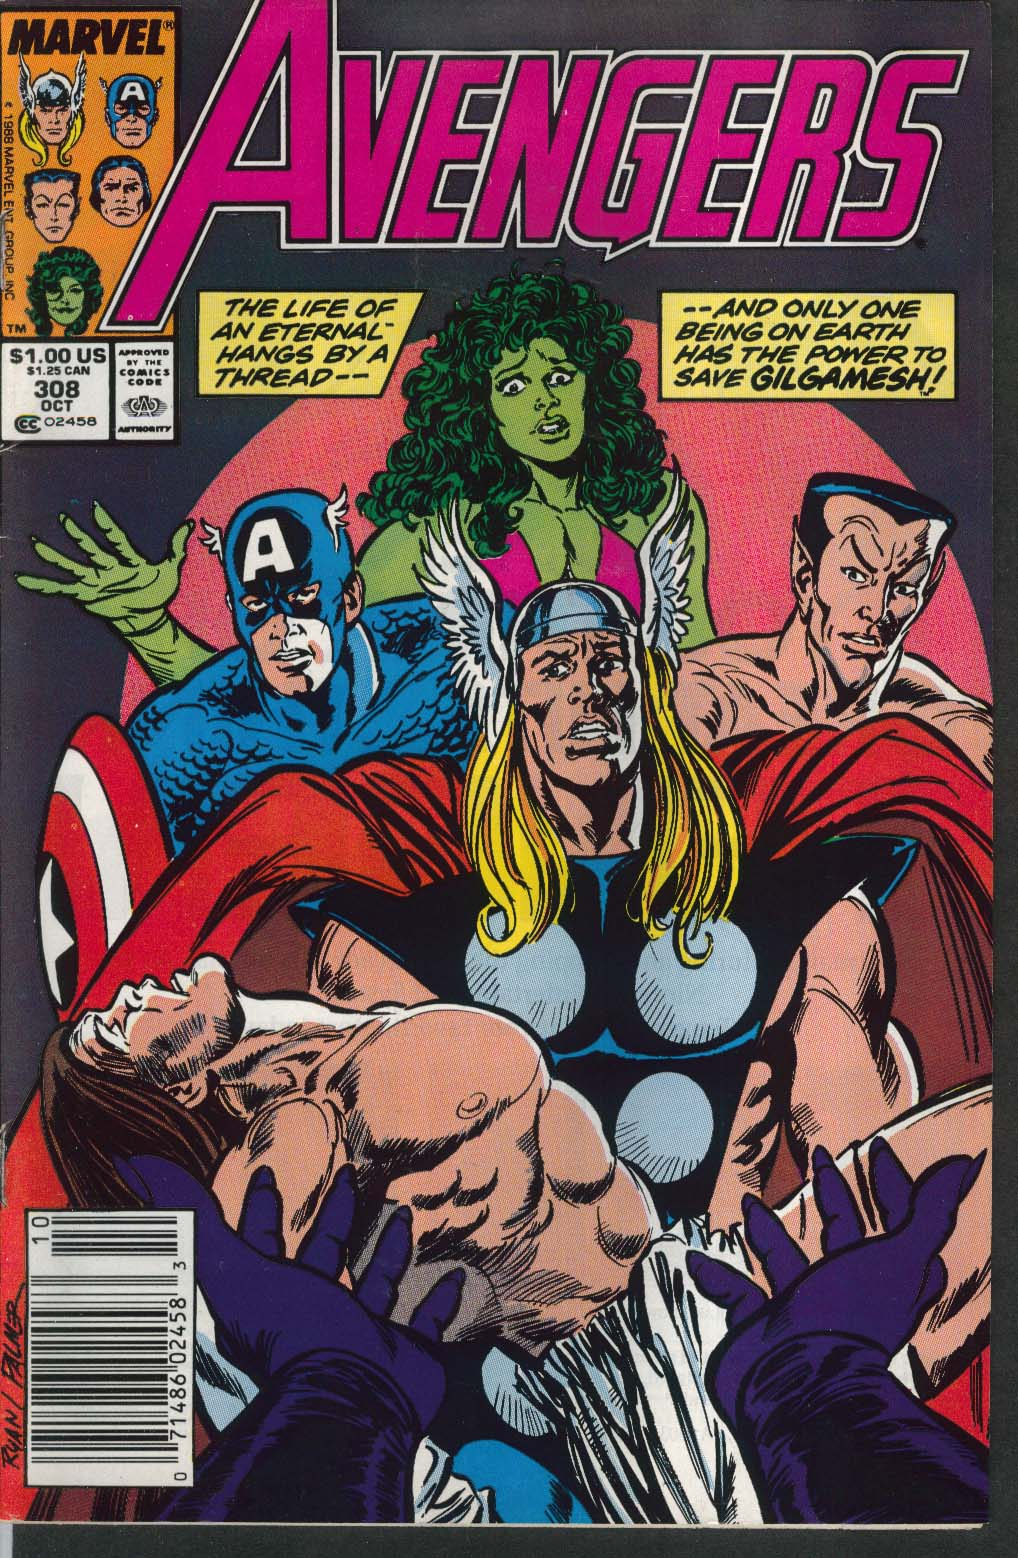 Image for AVENGERS #308 Marvel comic book 10 1989